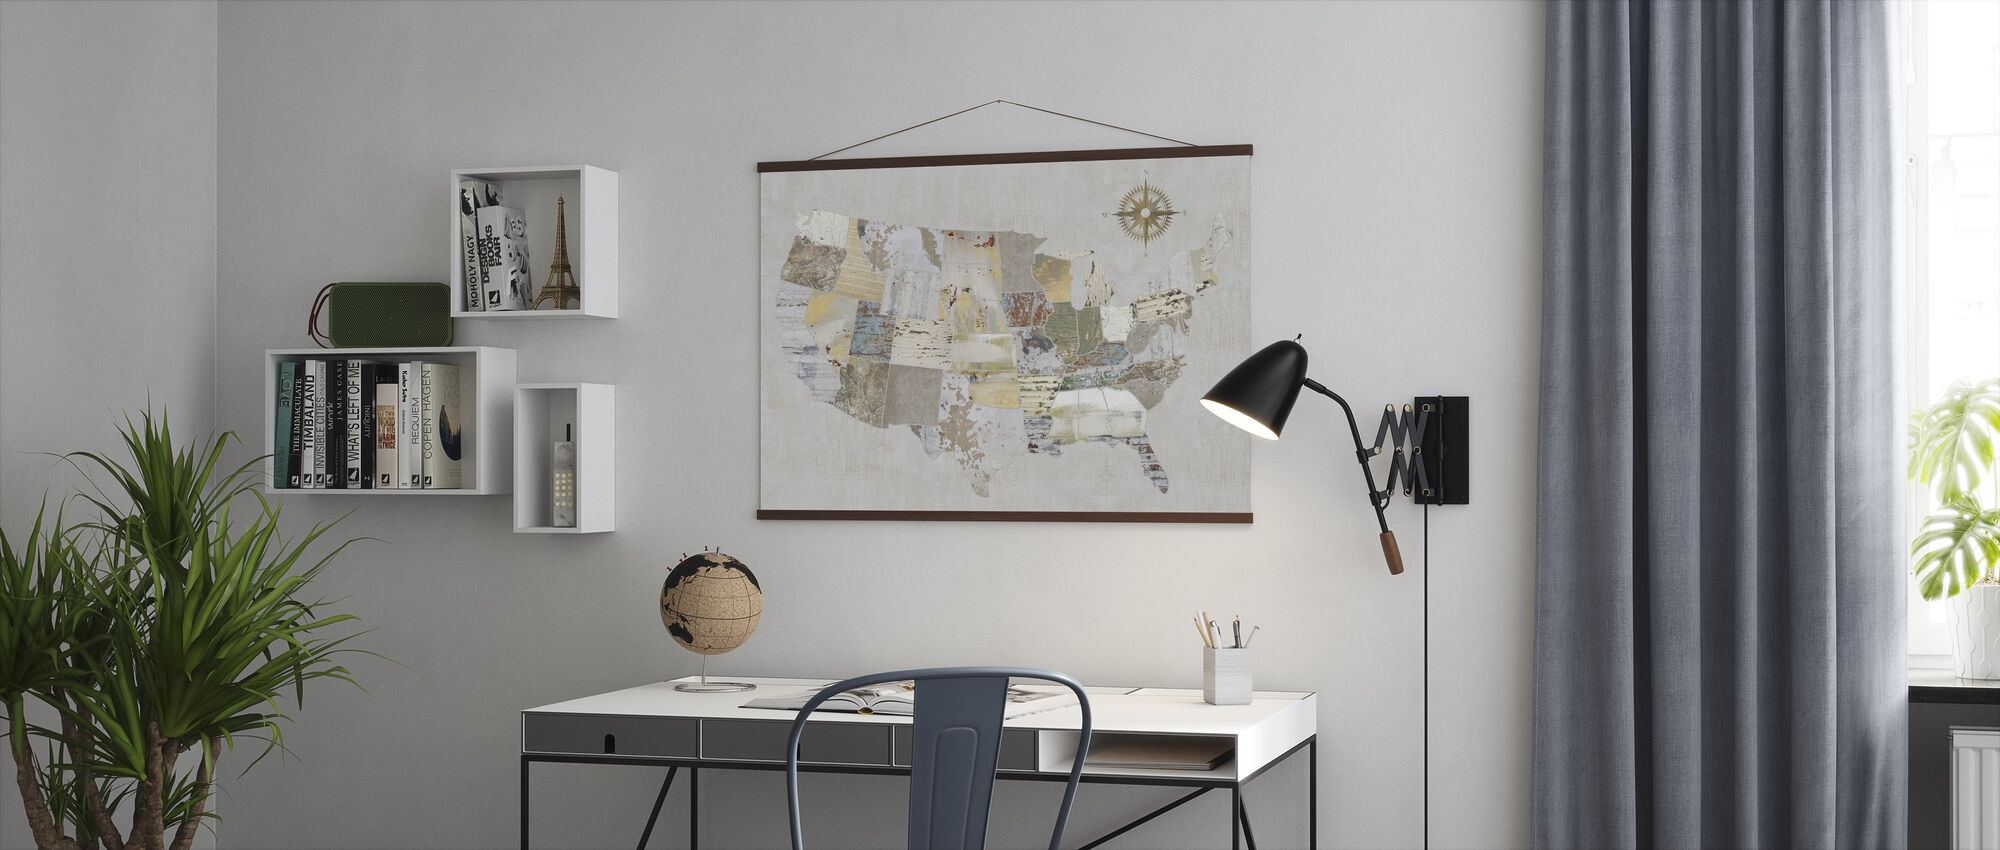 American Textures - Poster - Office